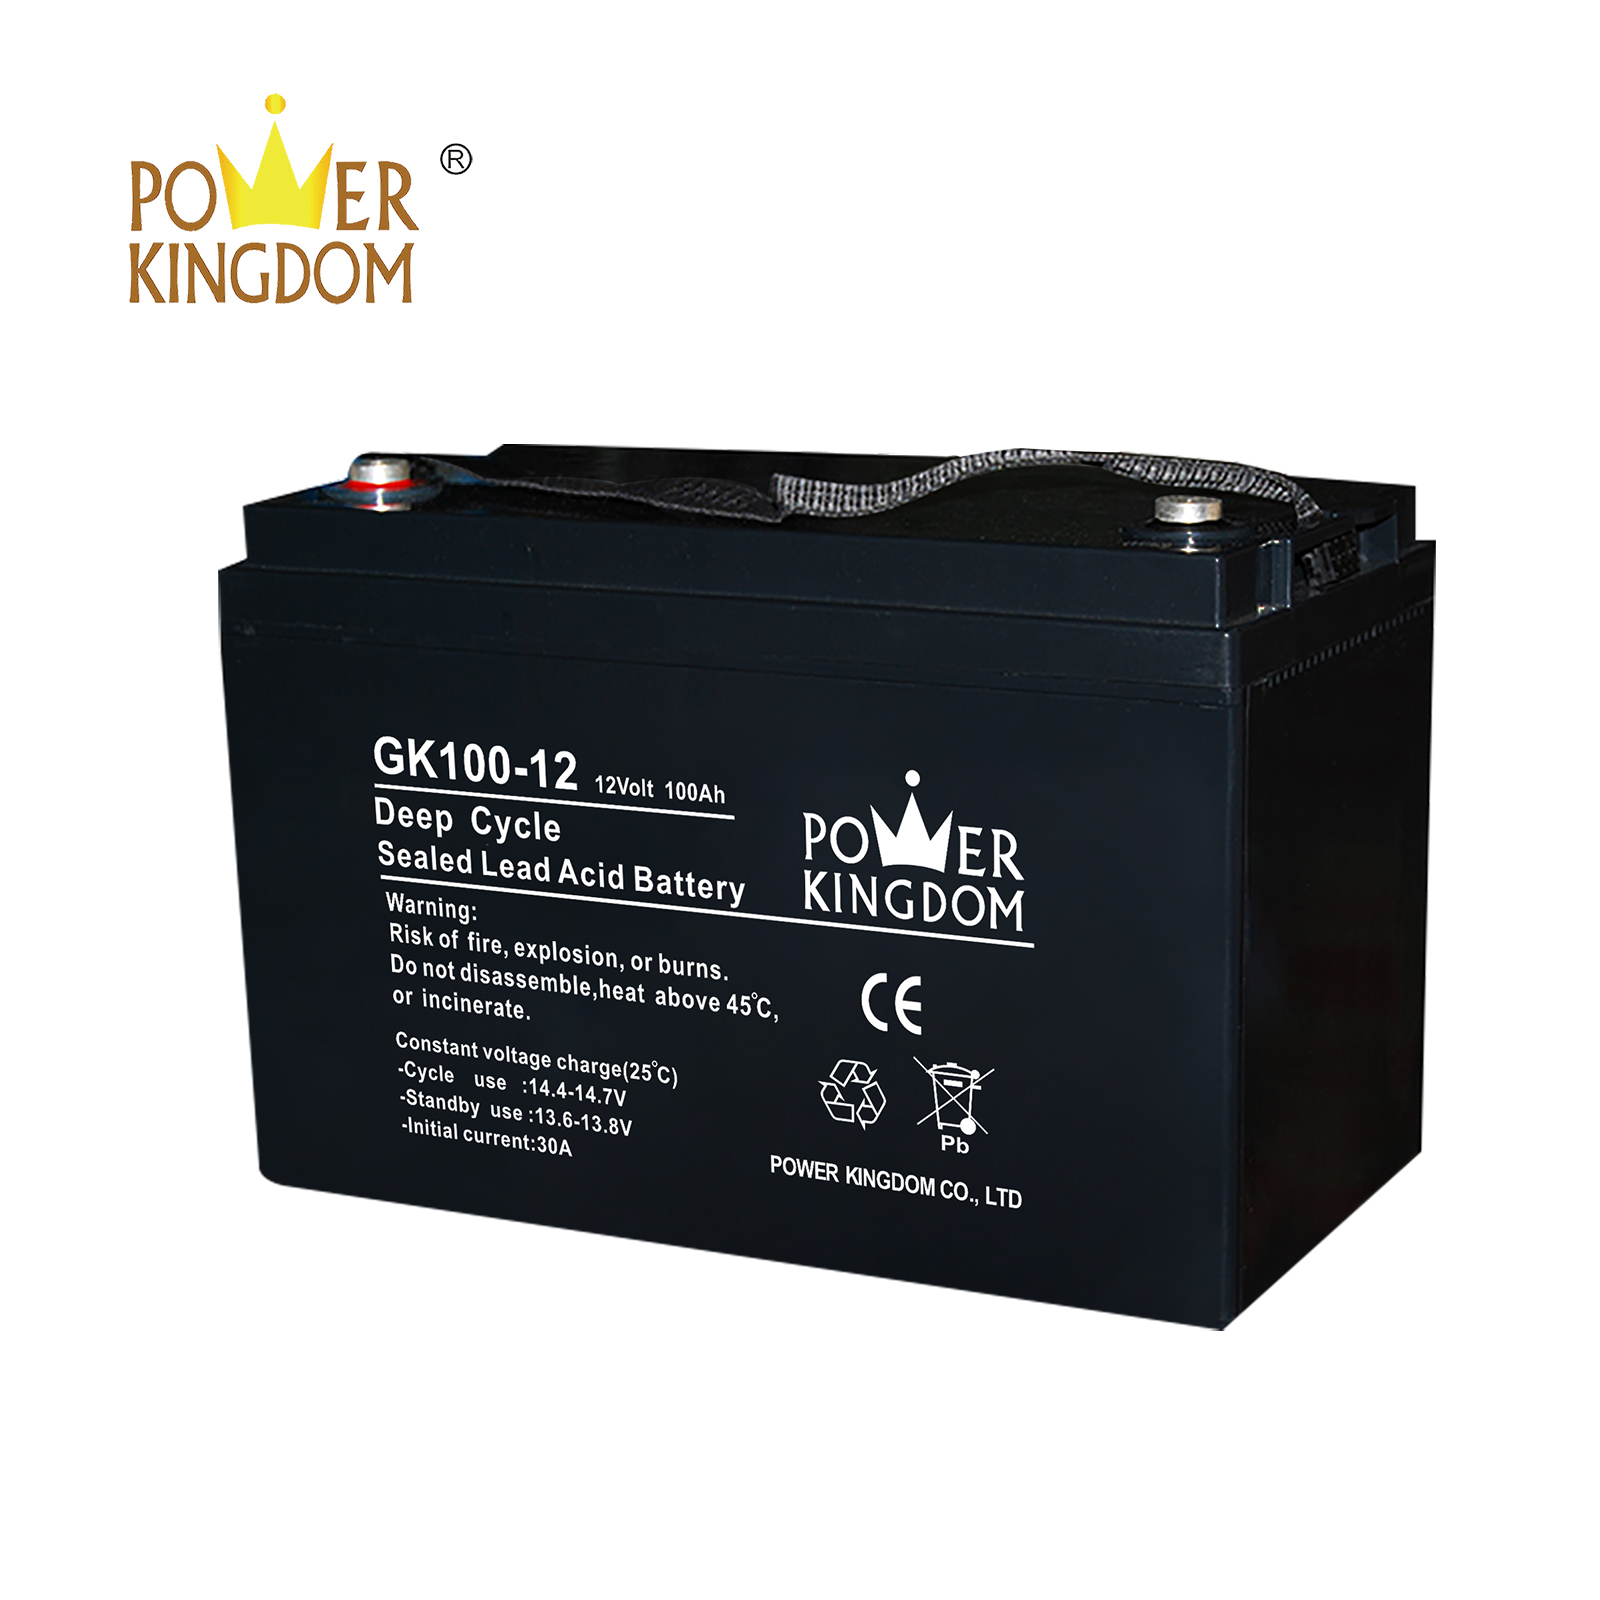 Power Kingdom high consistency ups battery pack design wind power system-2